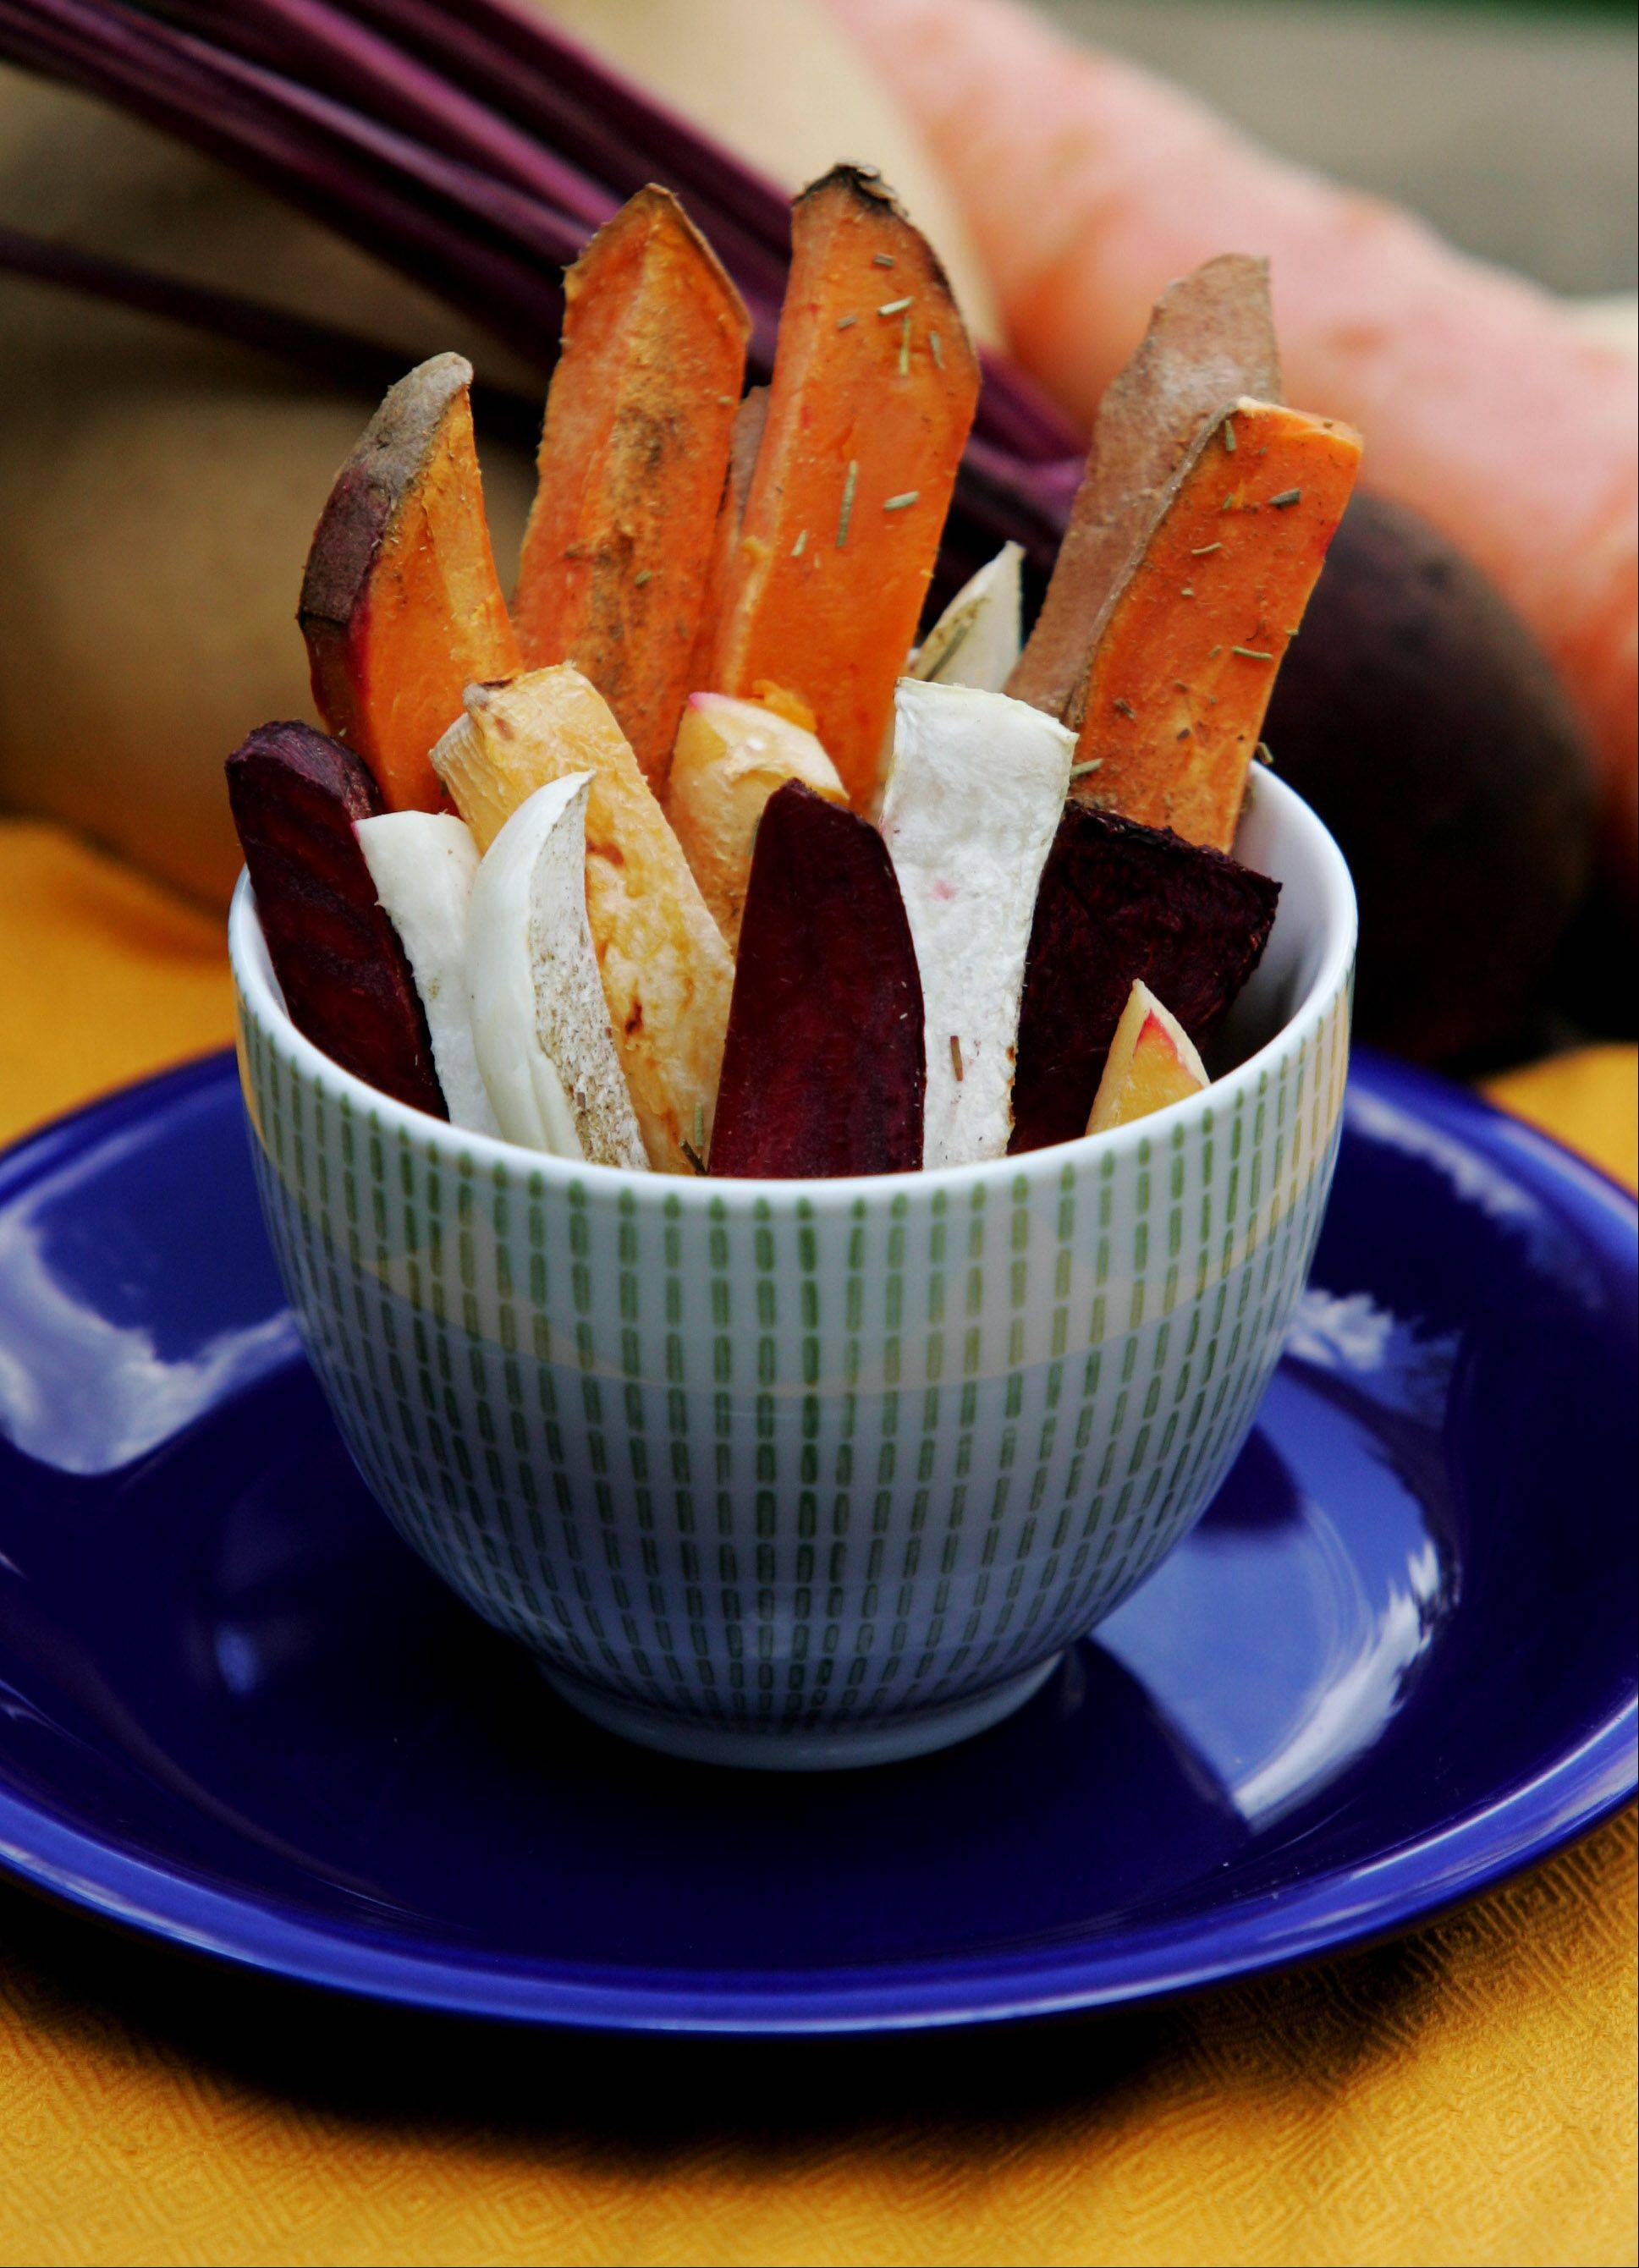 Substitute roasted root vegetables for traditional french fries.